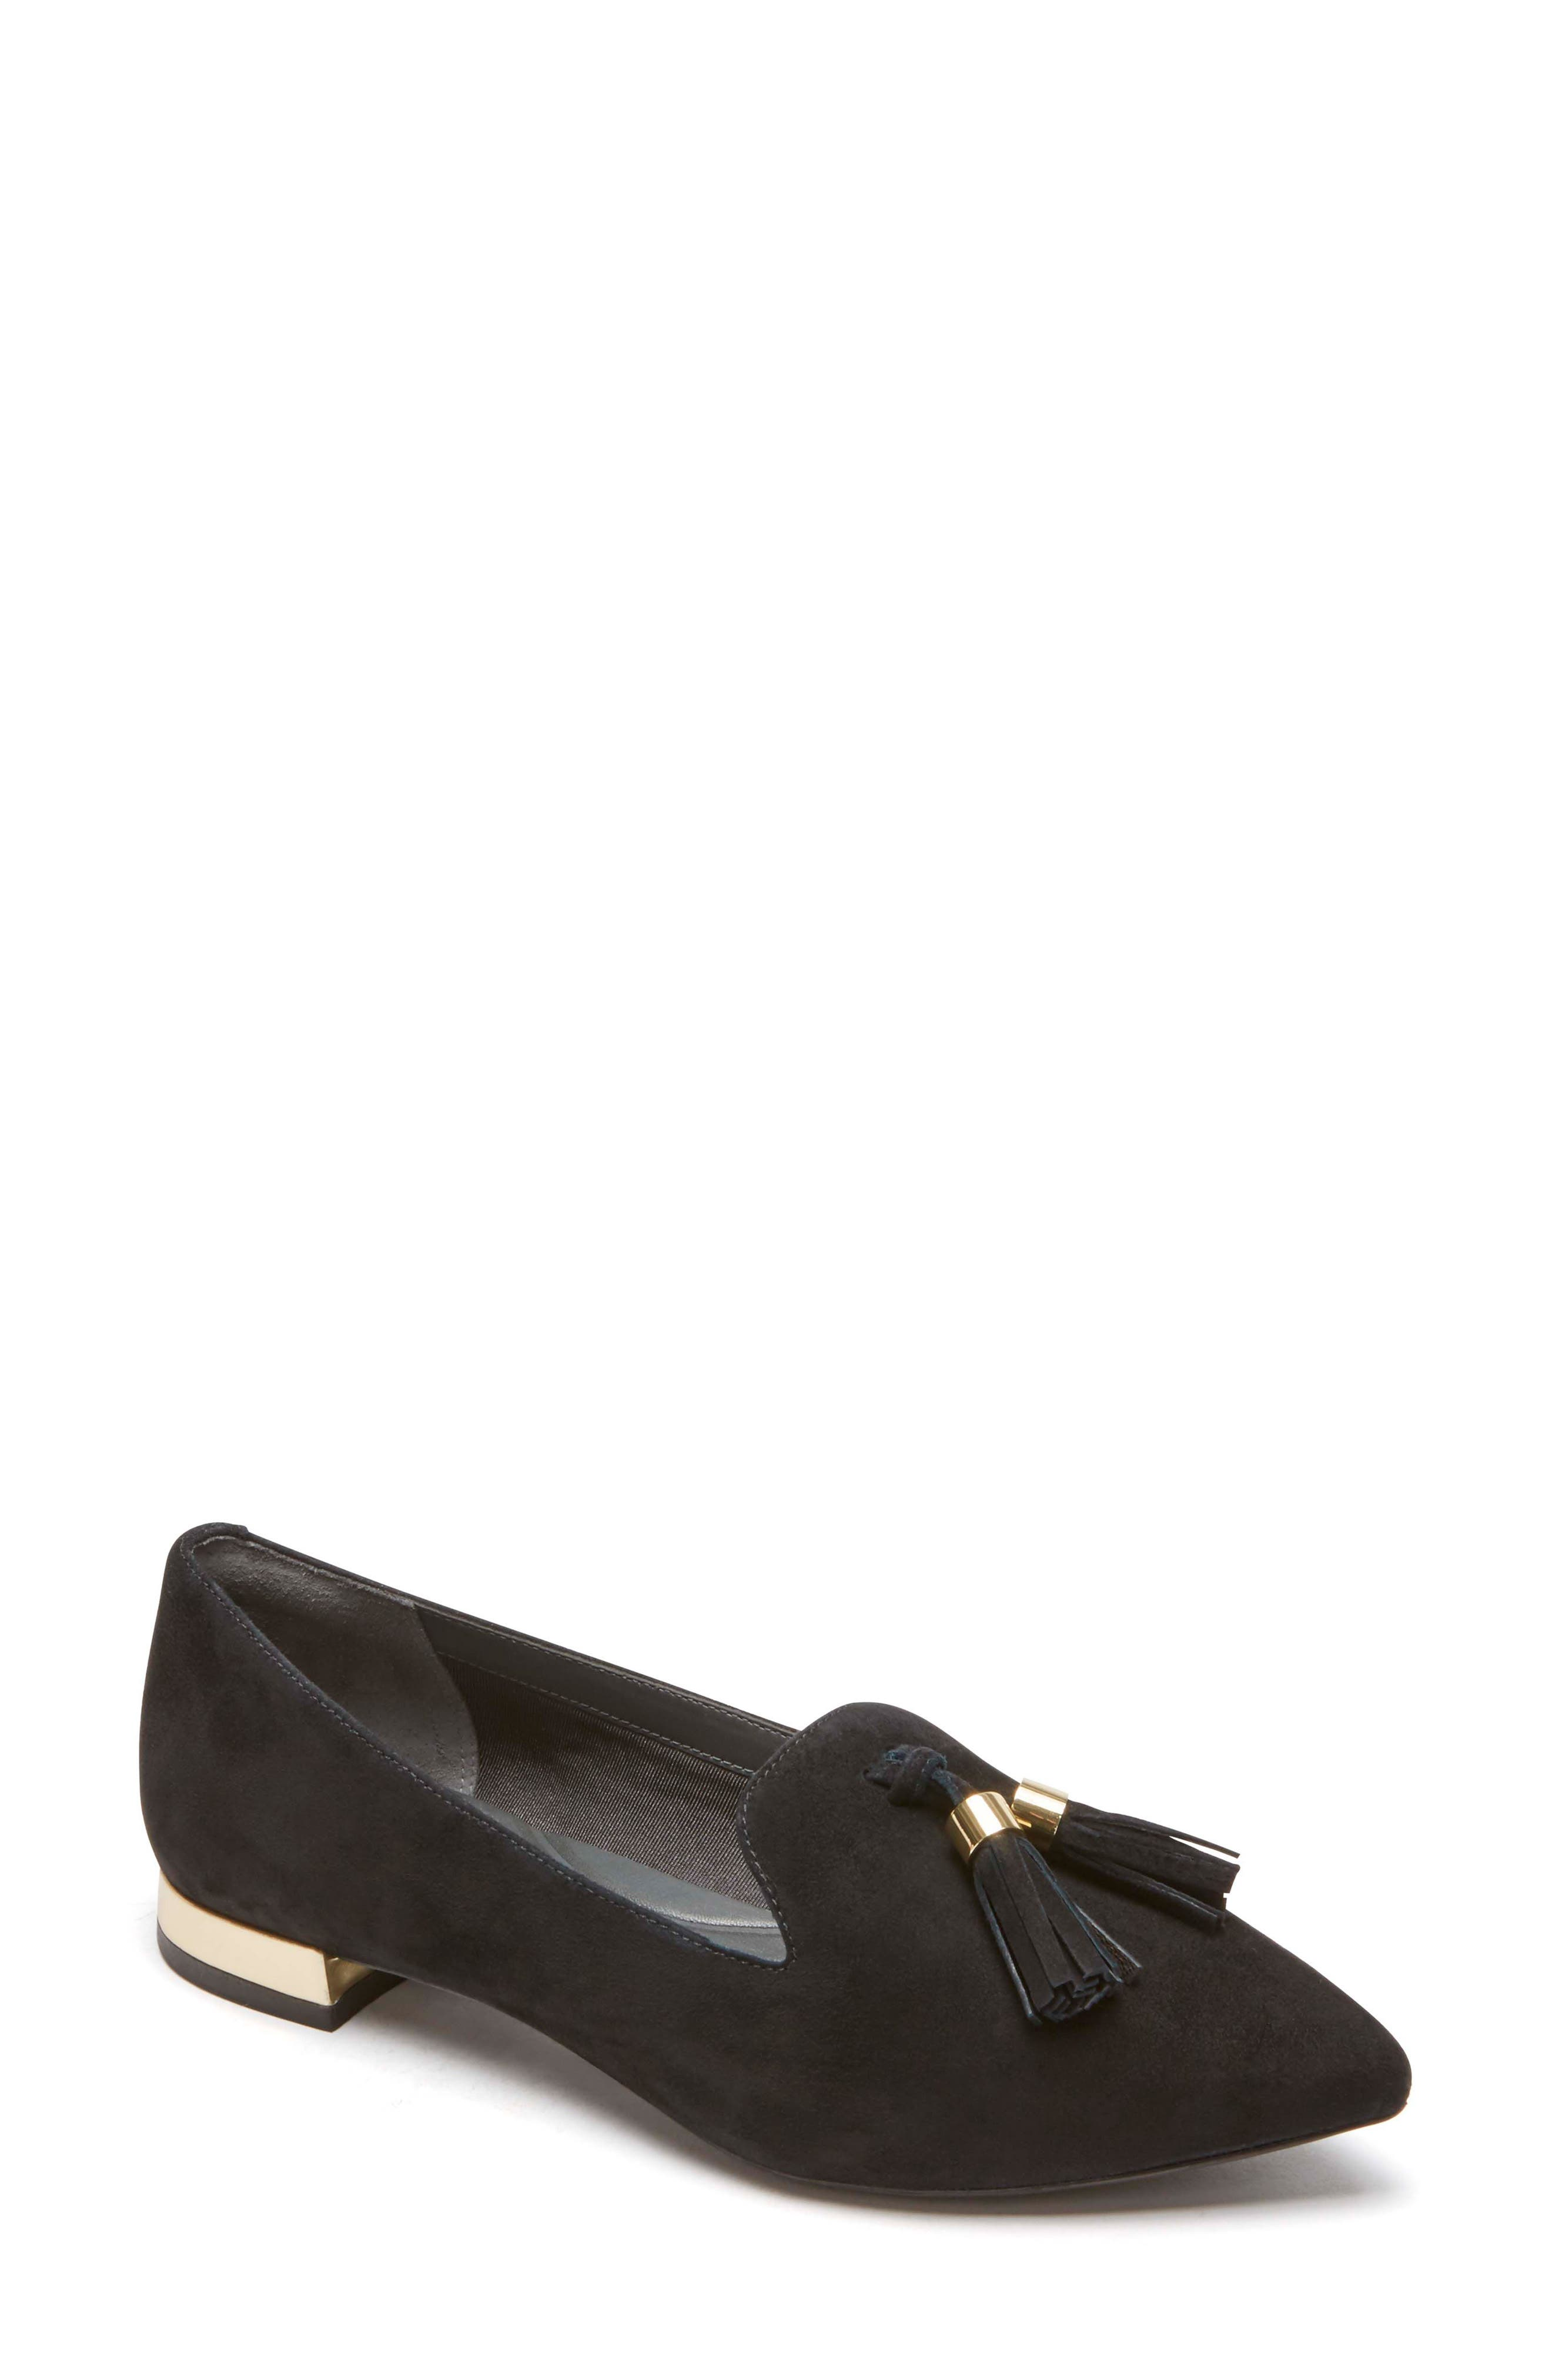 Total Motion Zuly Luxe Pointy Toe Loafer,                         Main,                         color, BLACK SUEDE